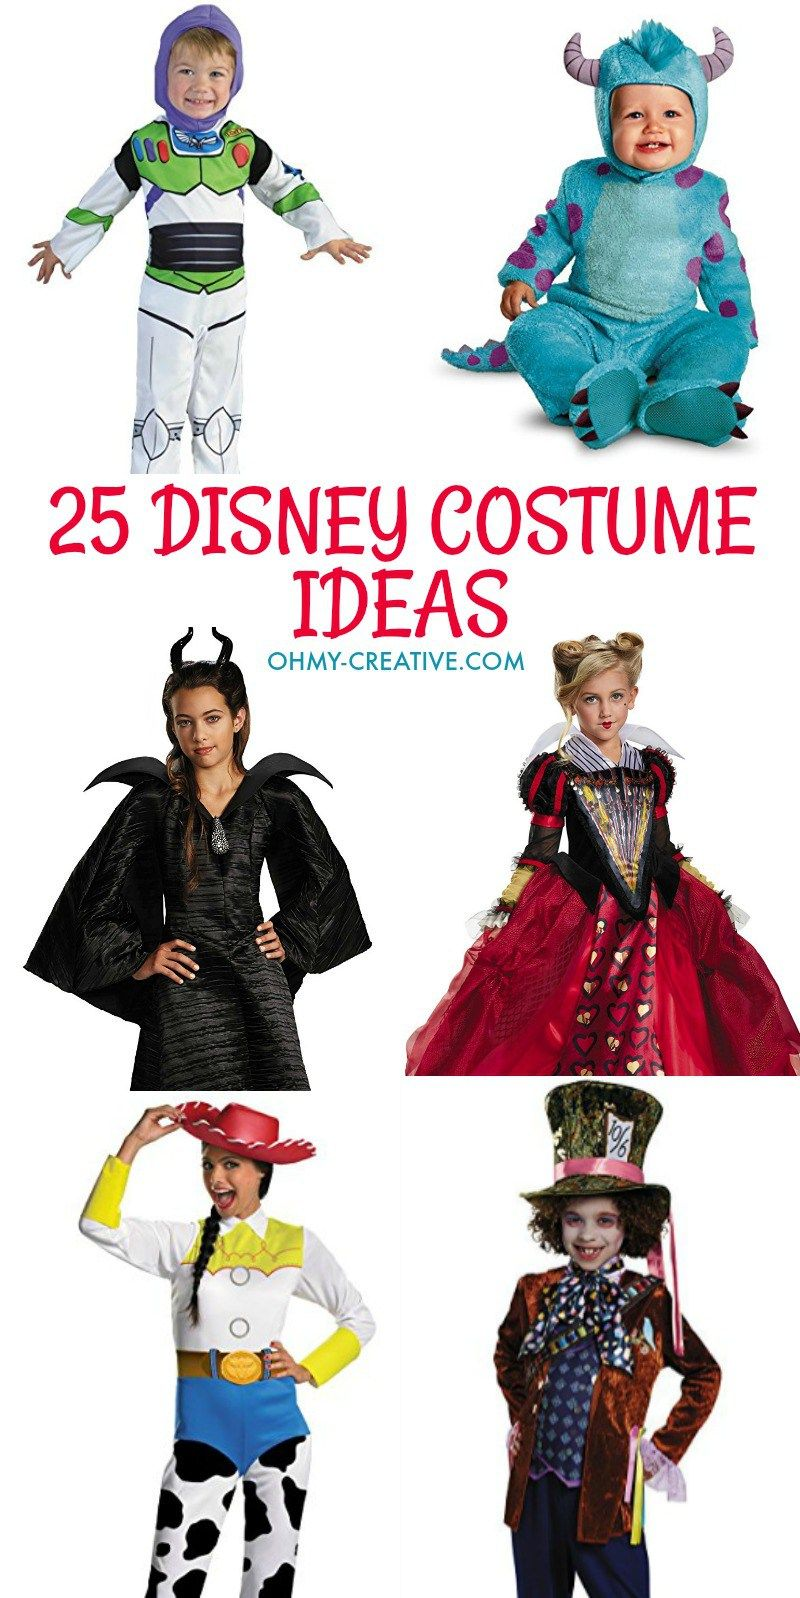 12e2949d52e 25 Disney Costume Ideas On Amazon | Oh My! Creative Popular Holiday ...